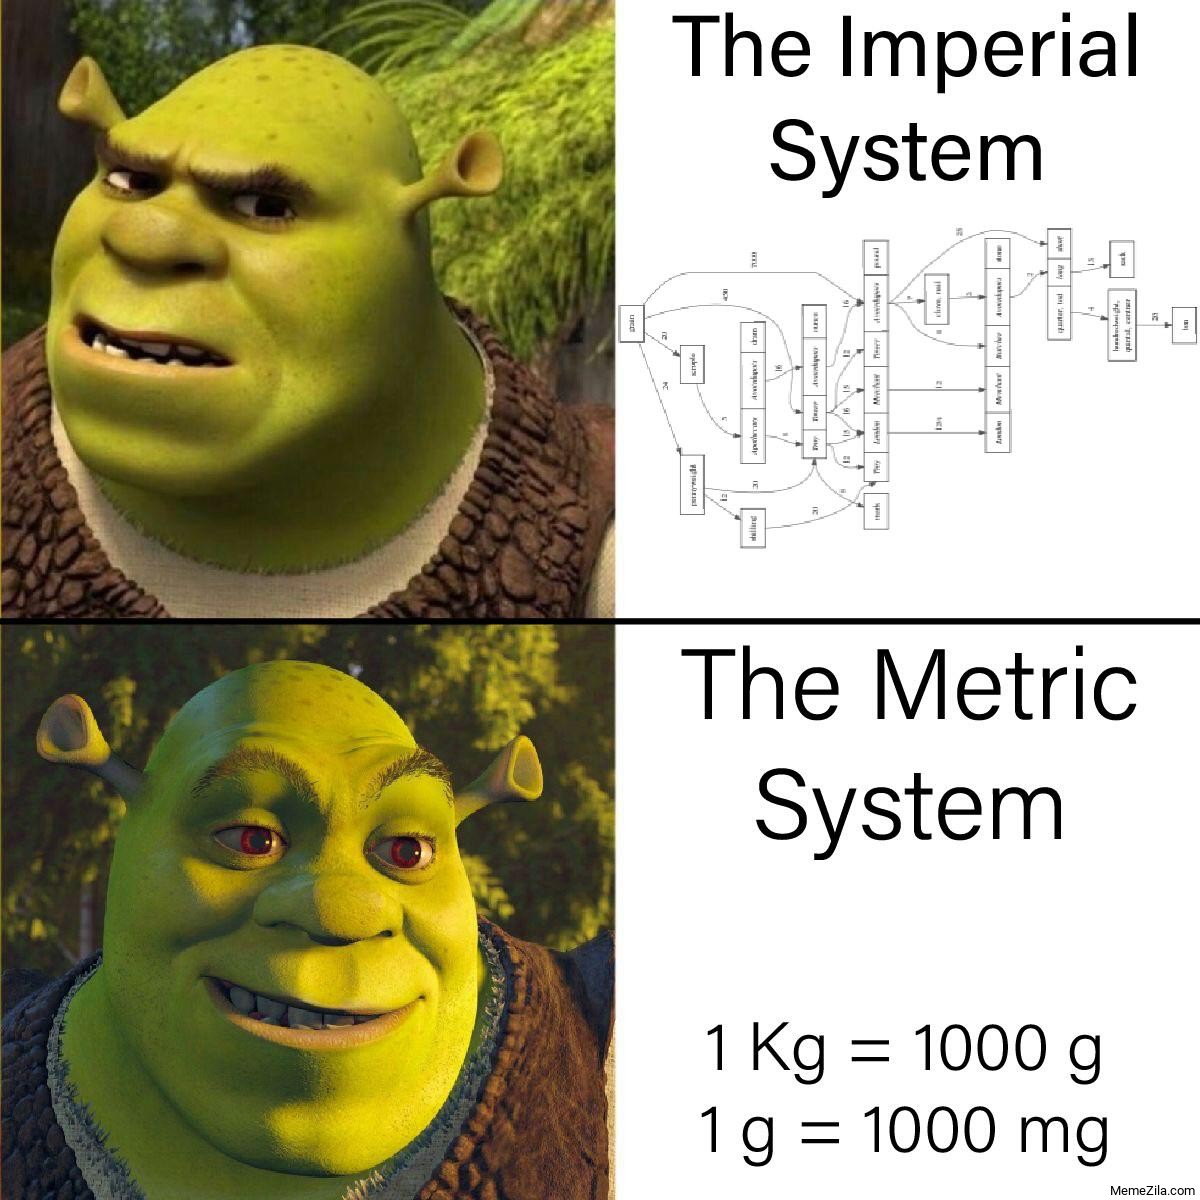 The Imperial System vs The Metric System meme